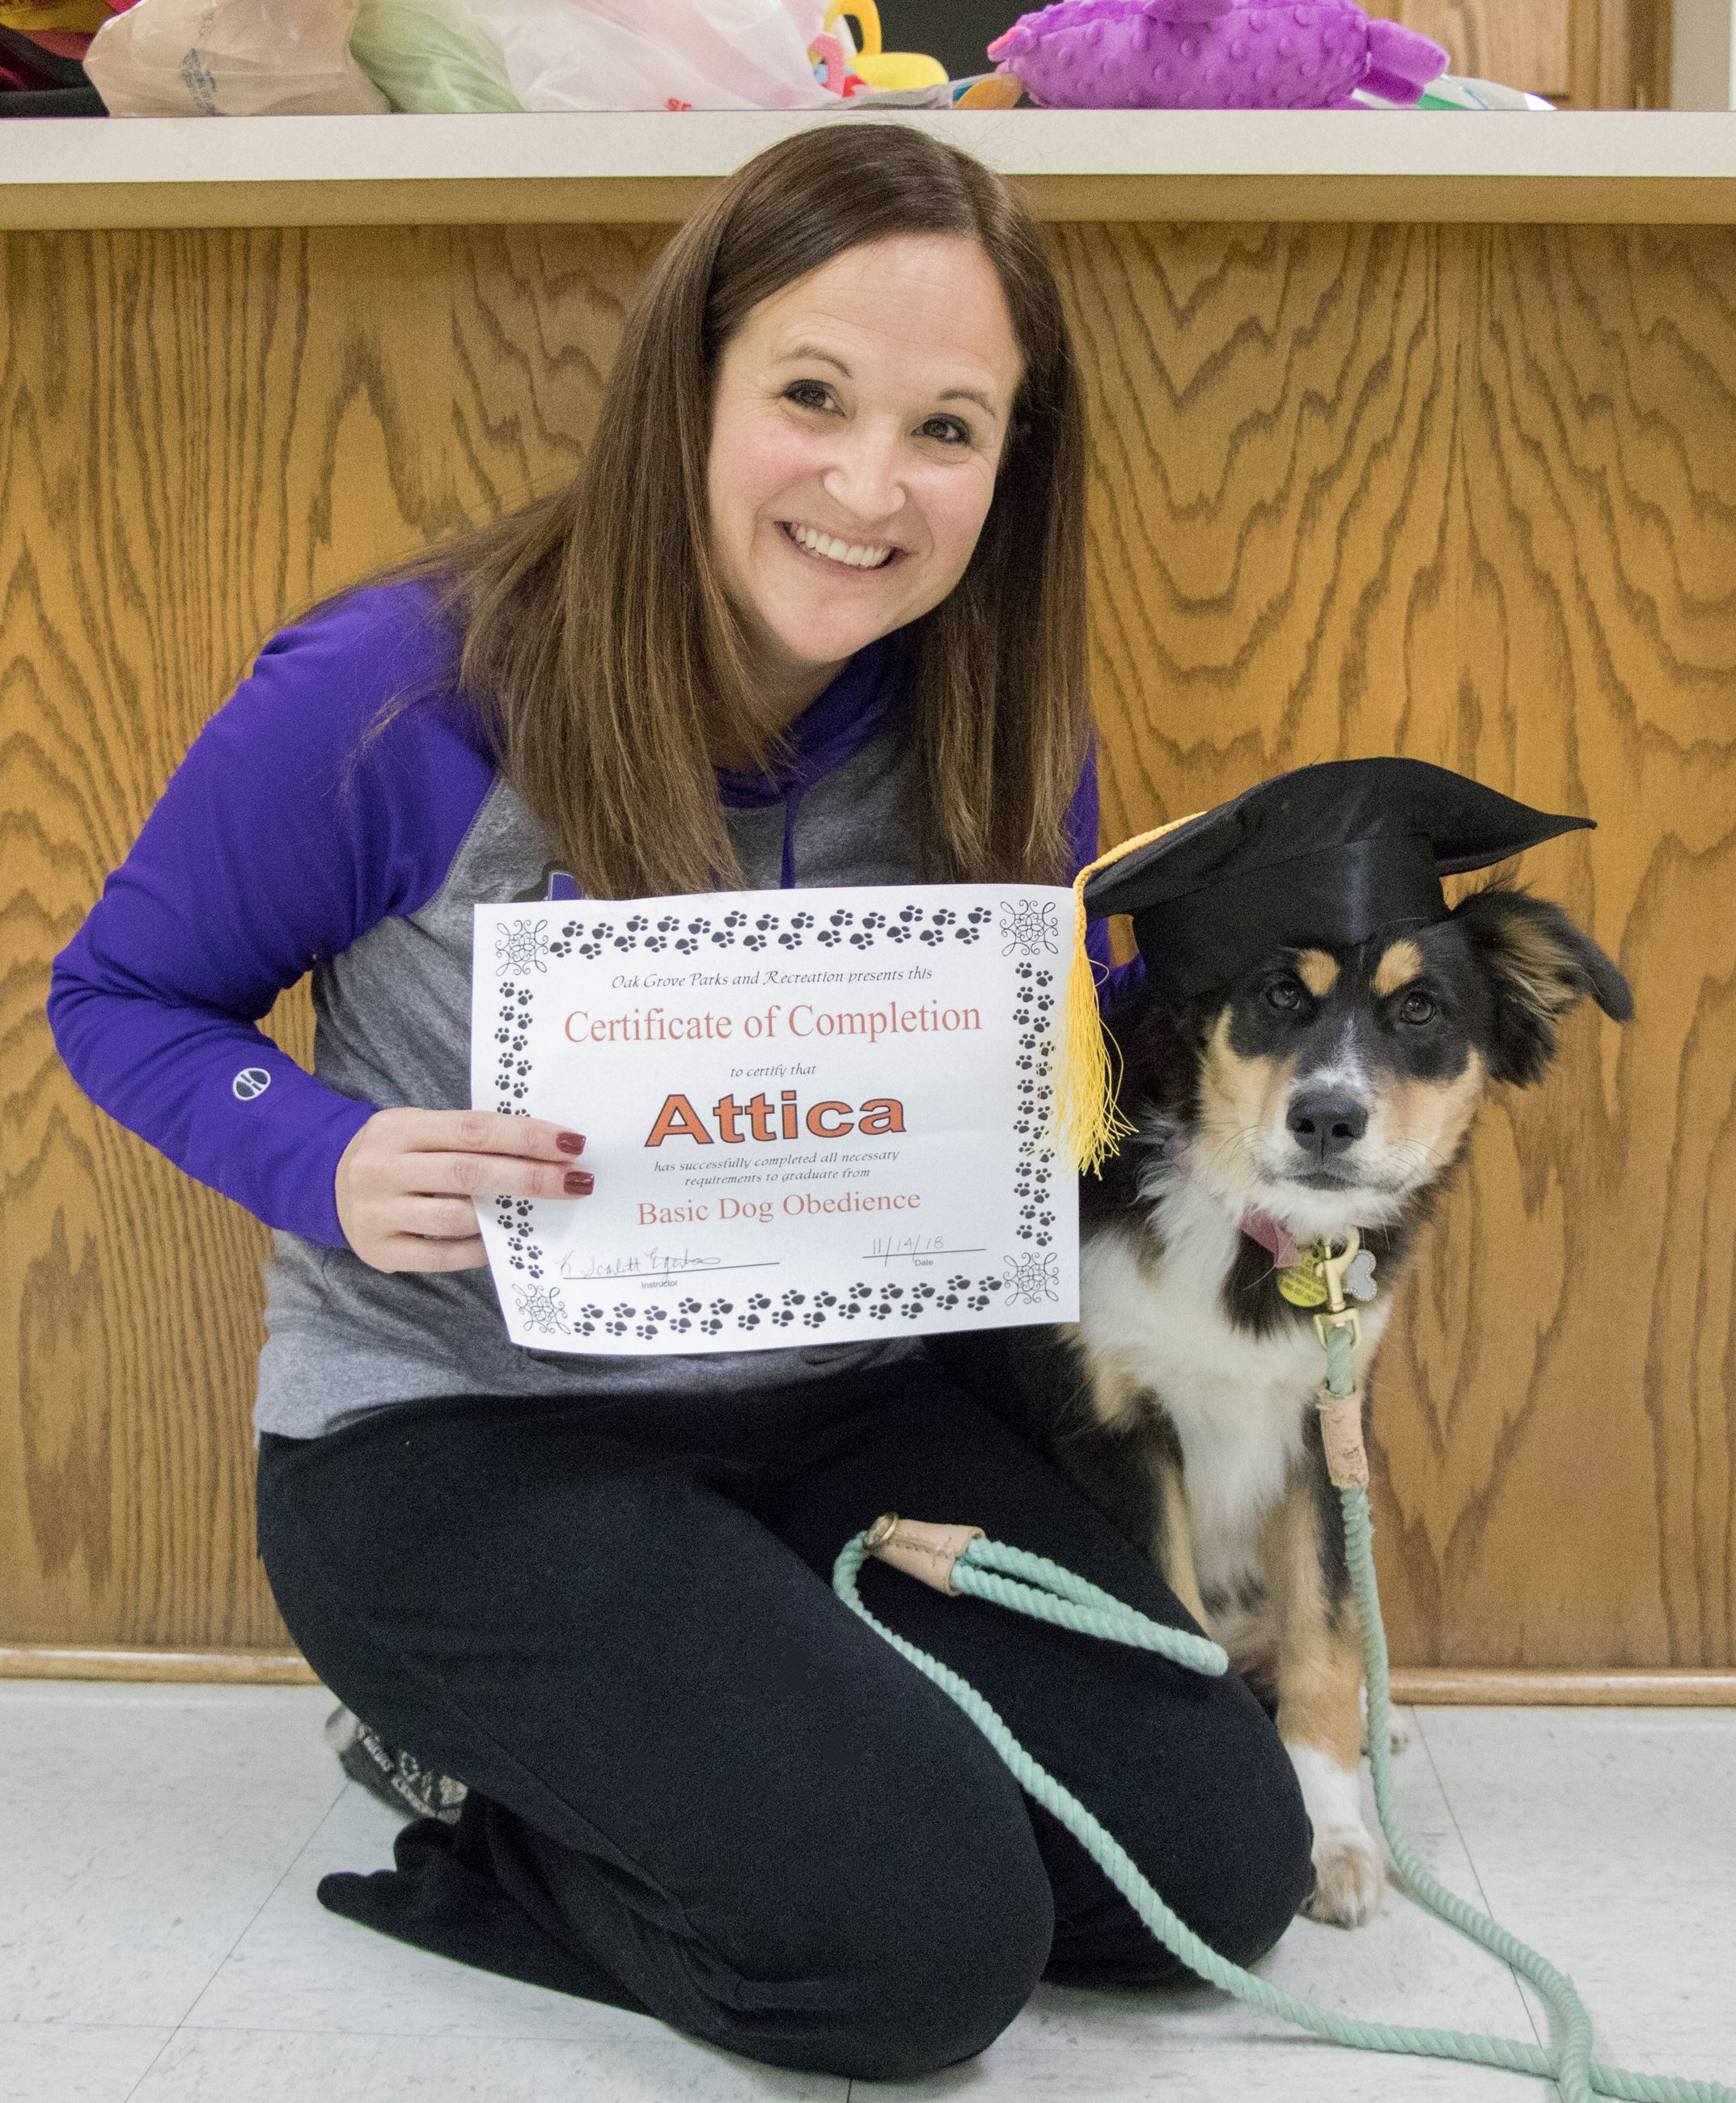 Basic Dog Obedience graduate